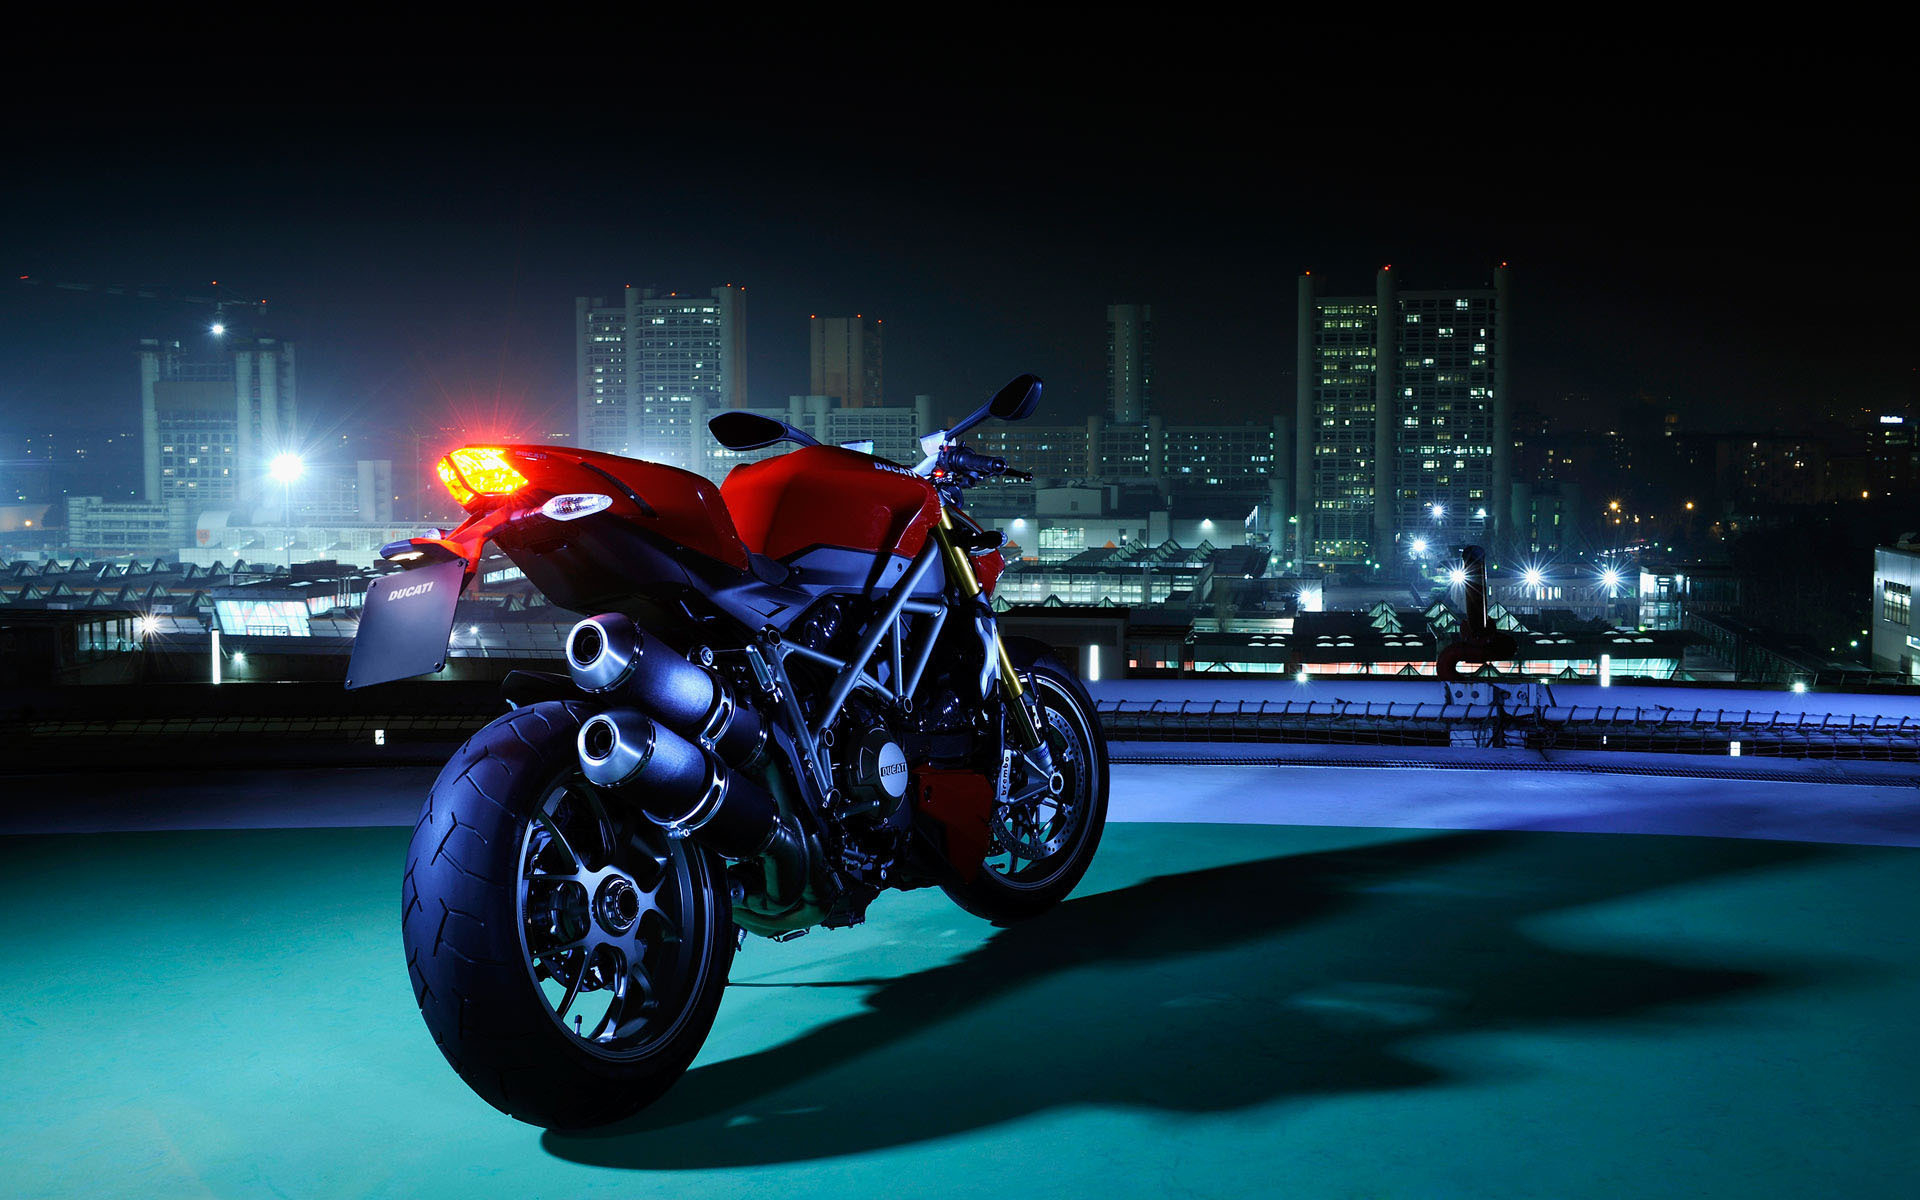 Ducati Monster wallpapers and images   wallpapers pictures photos 1920x1200